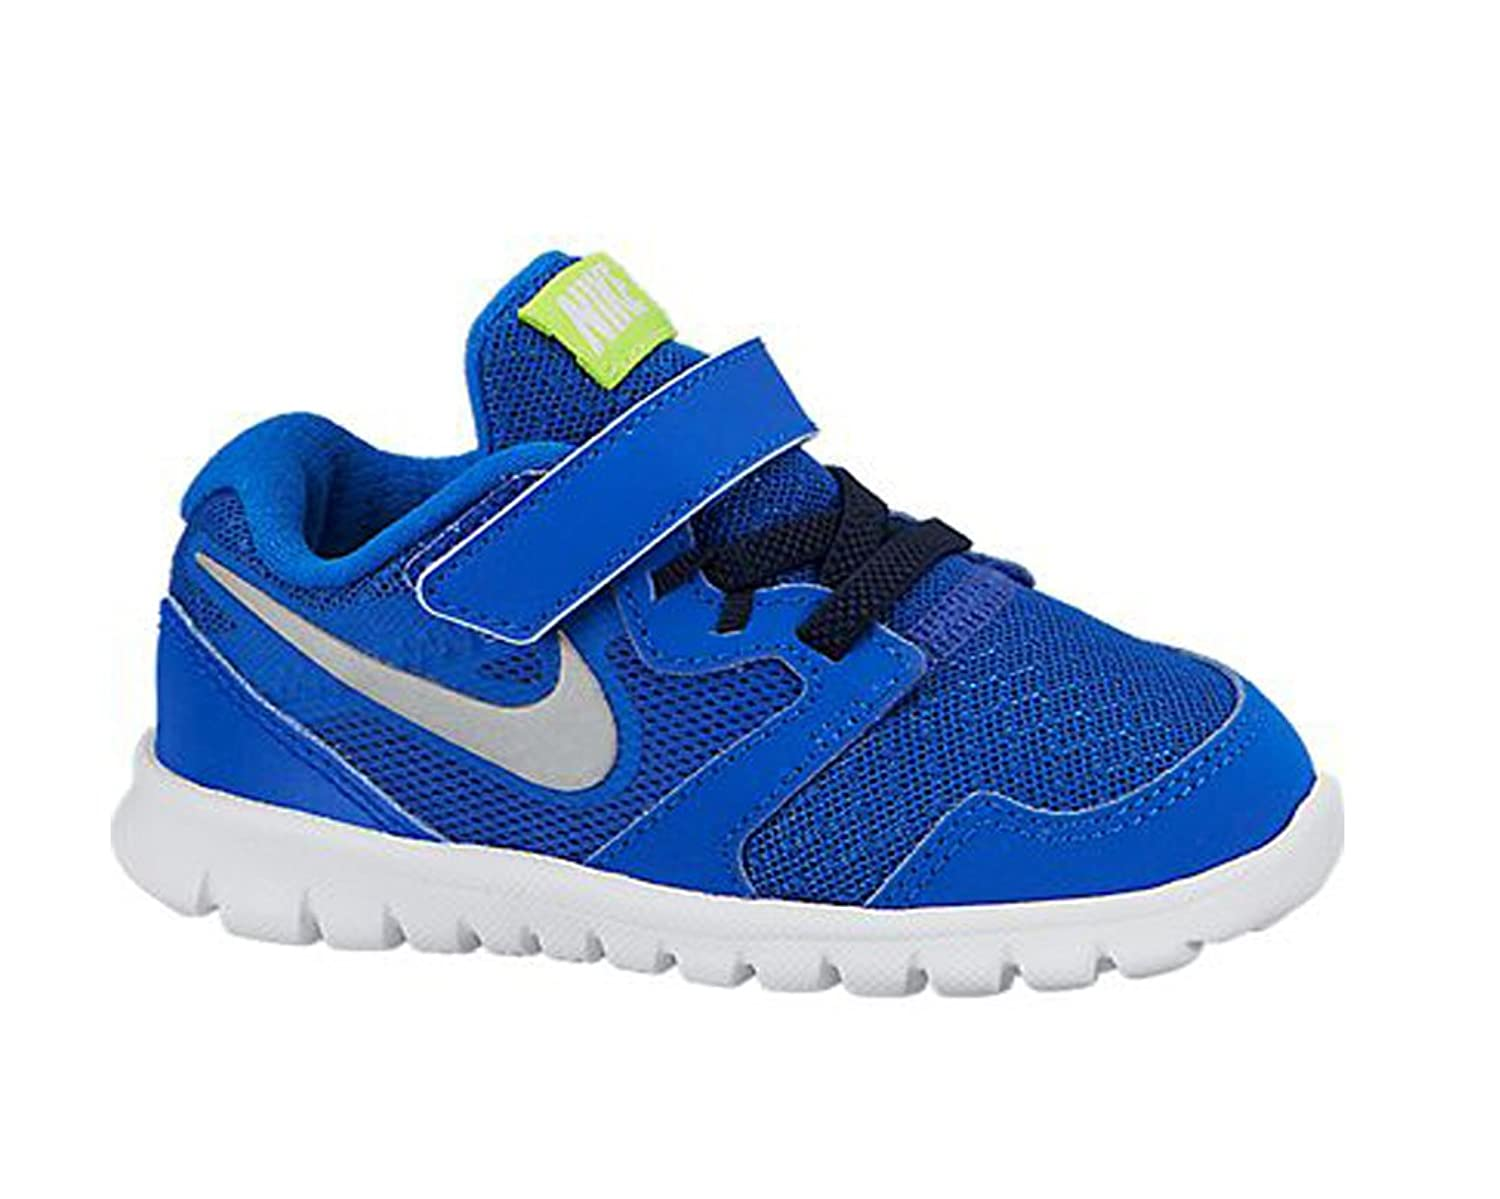 New Nike Baby Boy's Flex Experience 3 Athletic Shoes Hyper Cobalt/Silver 4